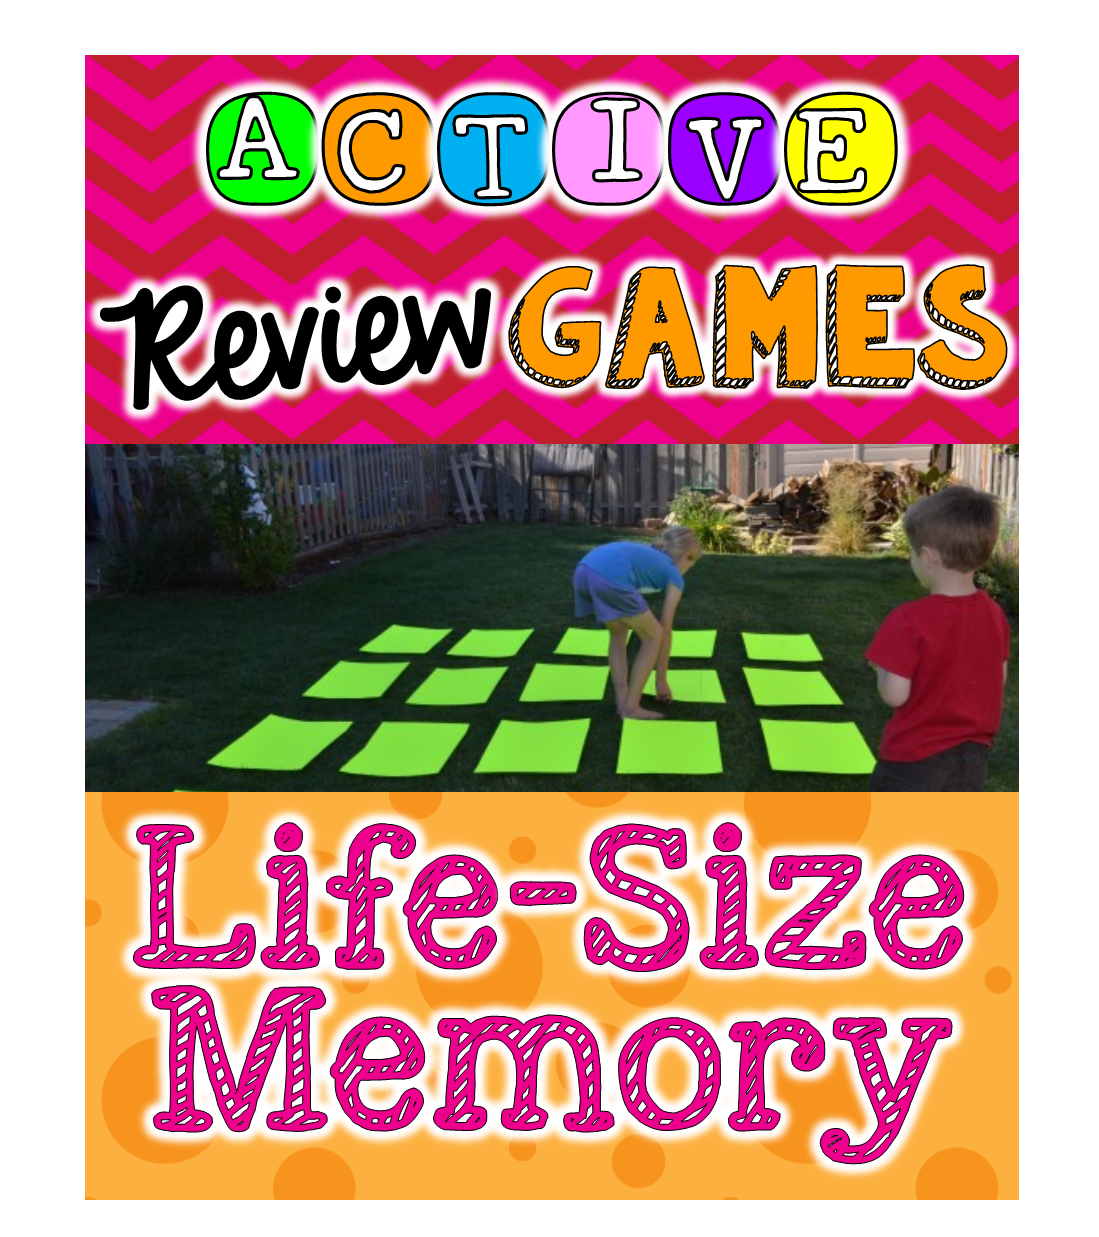 Using Active Review Games in the Classroom Review games